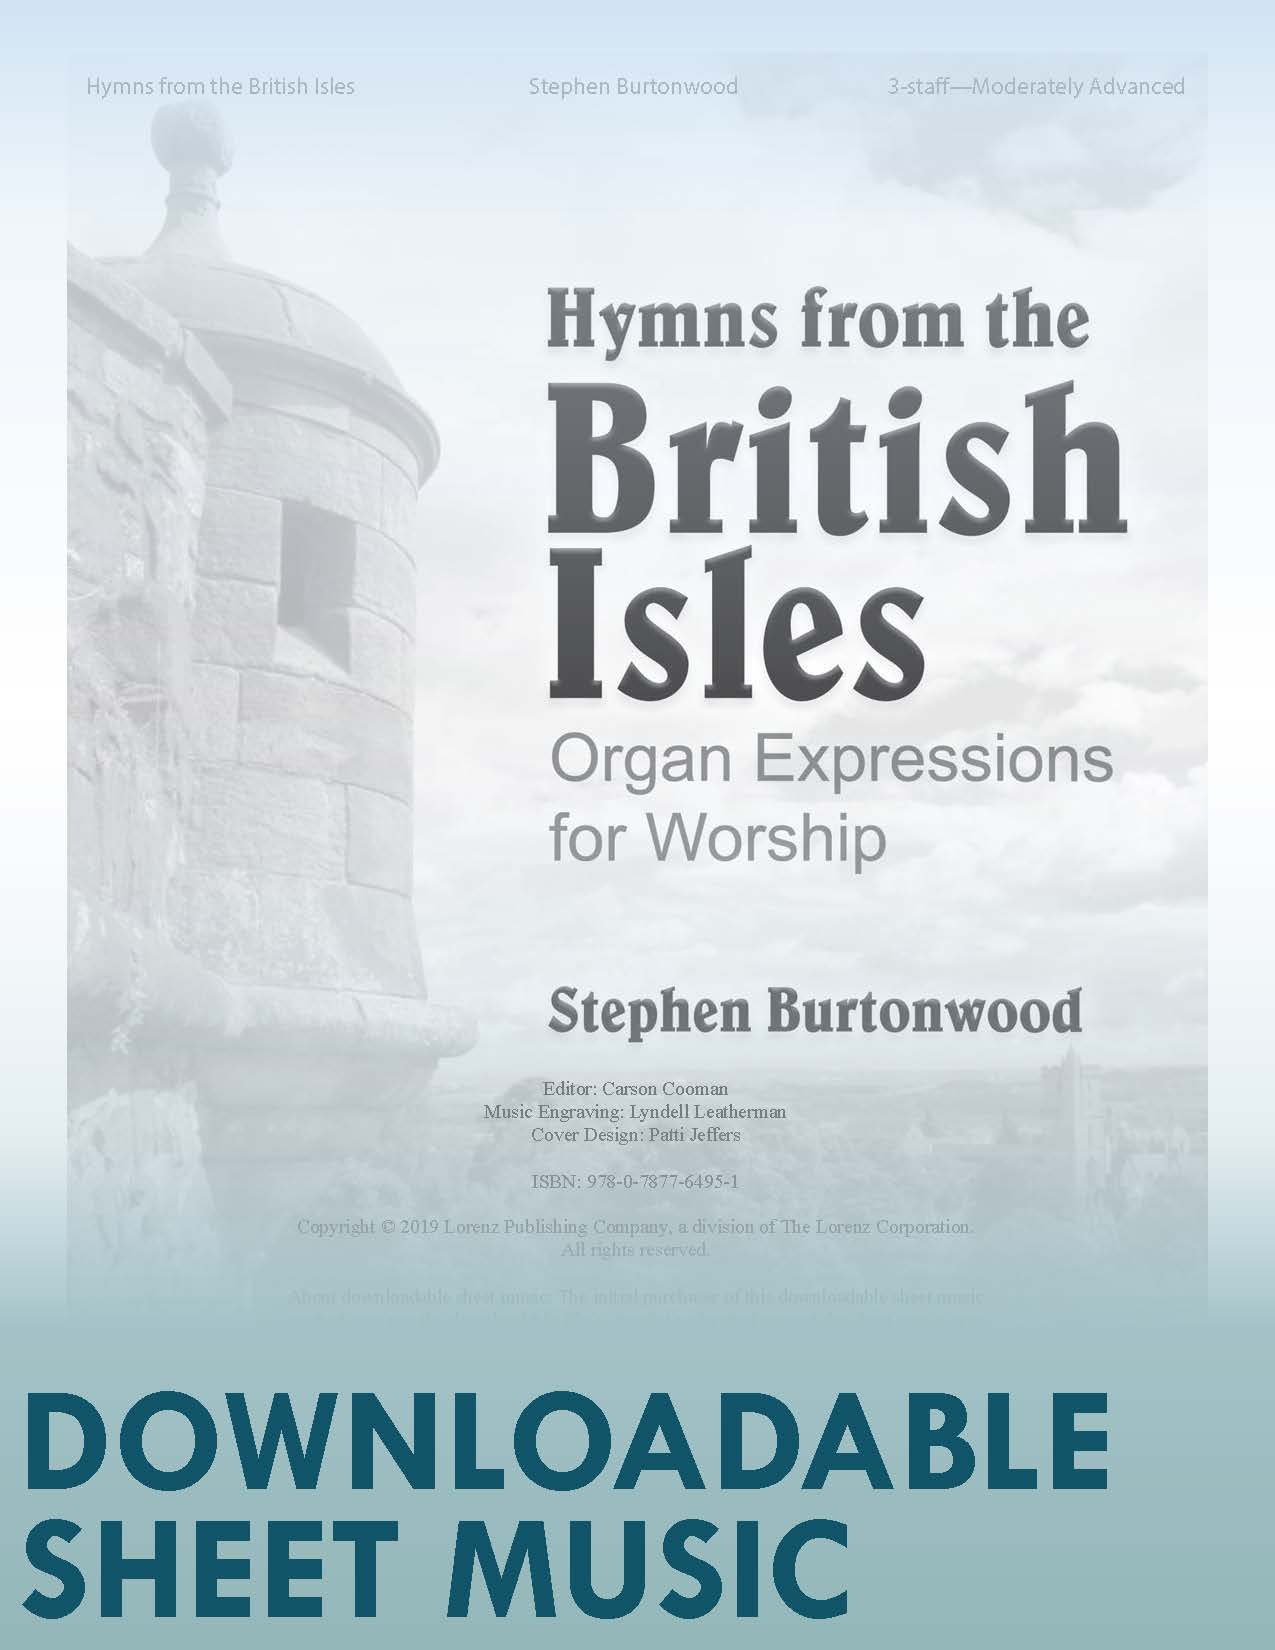 Hymns from the British Isles - Digital Download